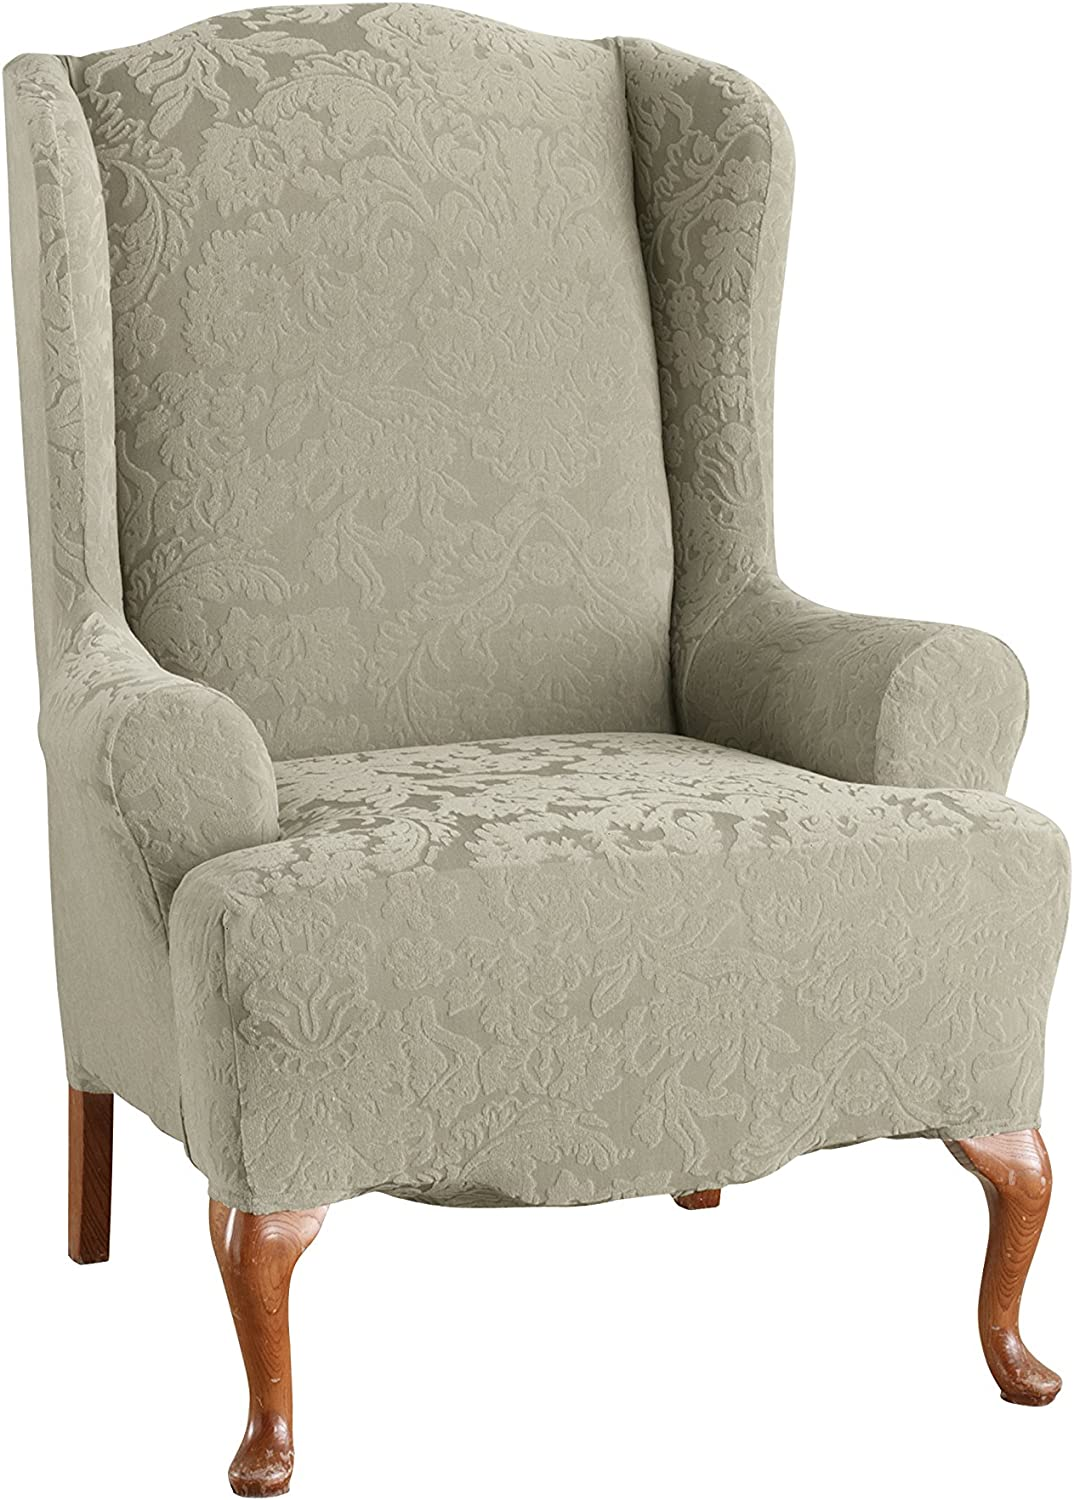 SureFit Stretch Jacquard Damask - Wing Chair Slipcover - Sage (SF39616)